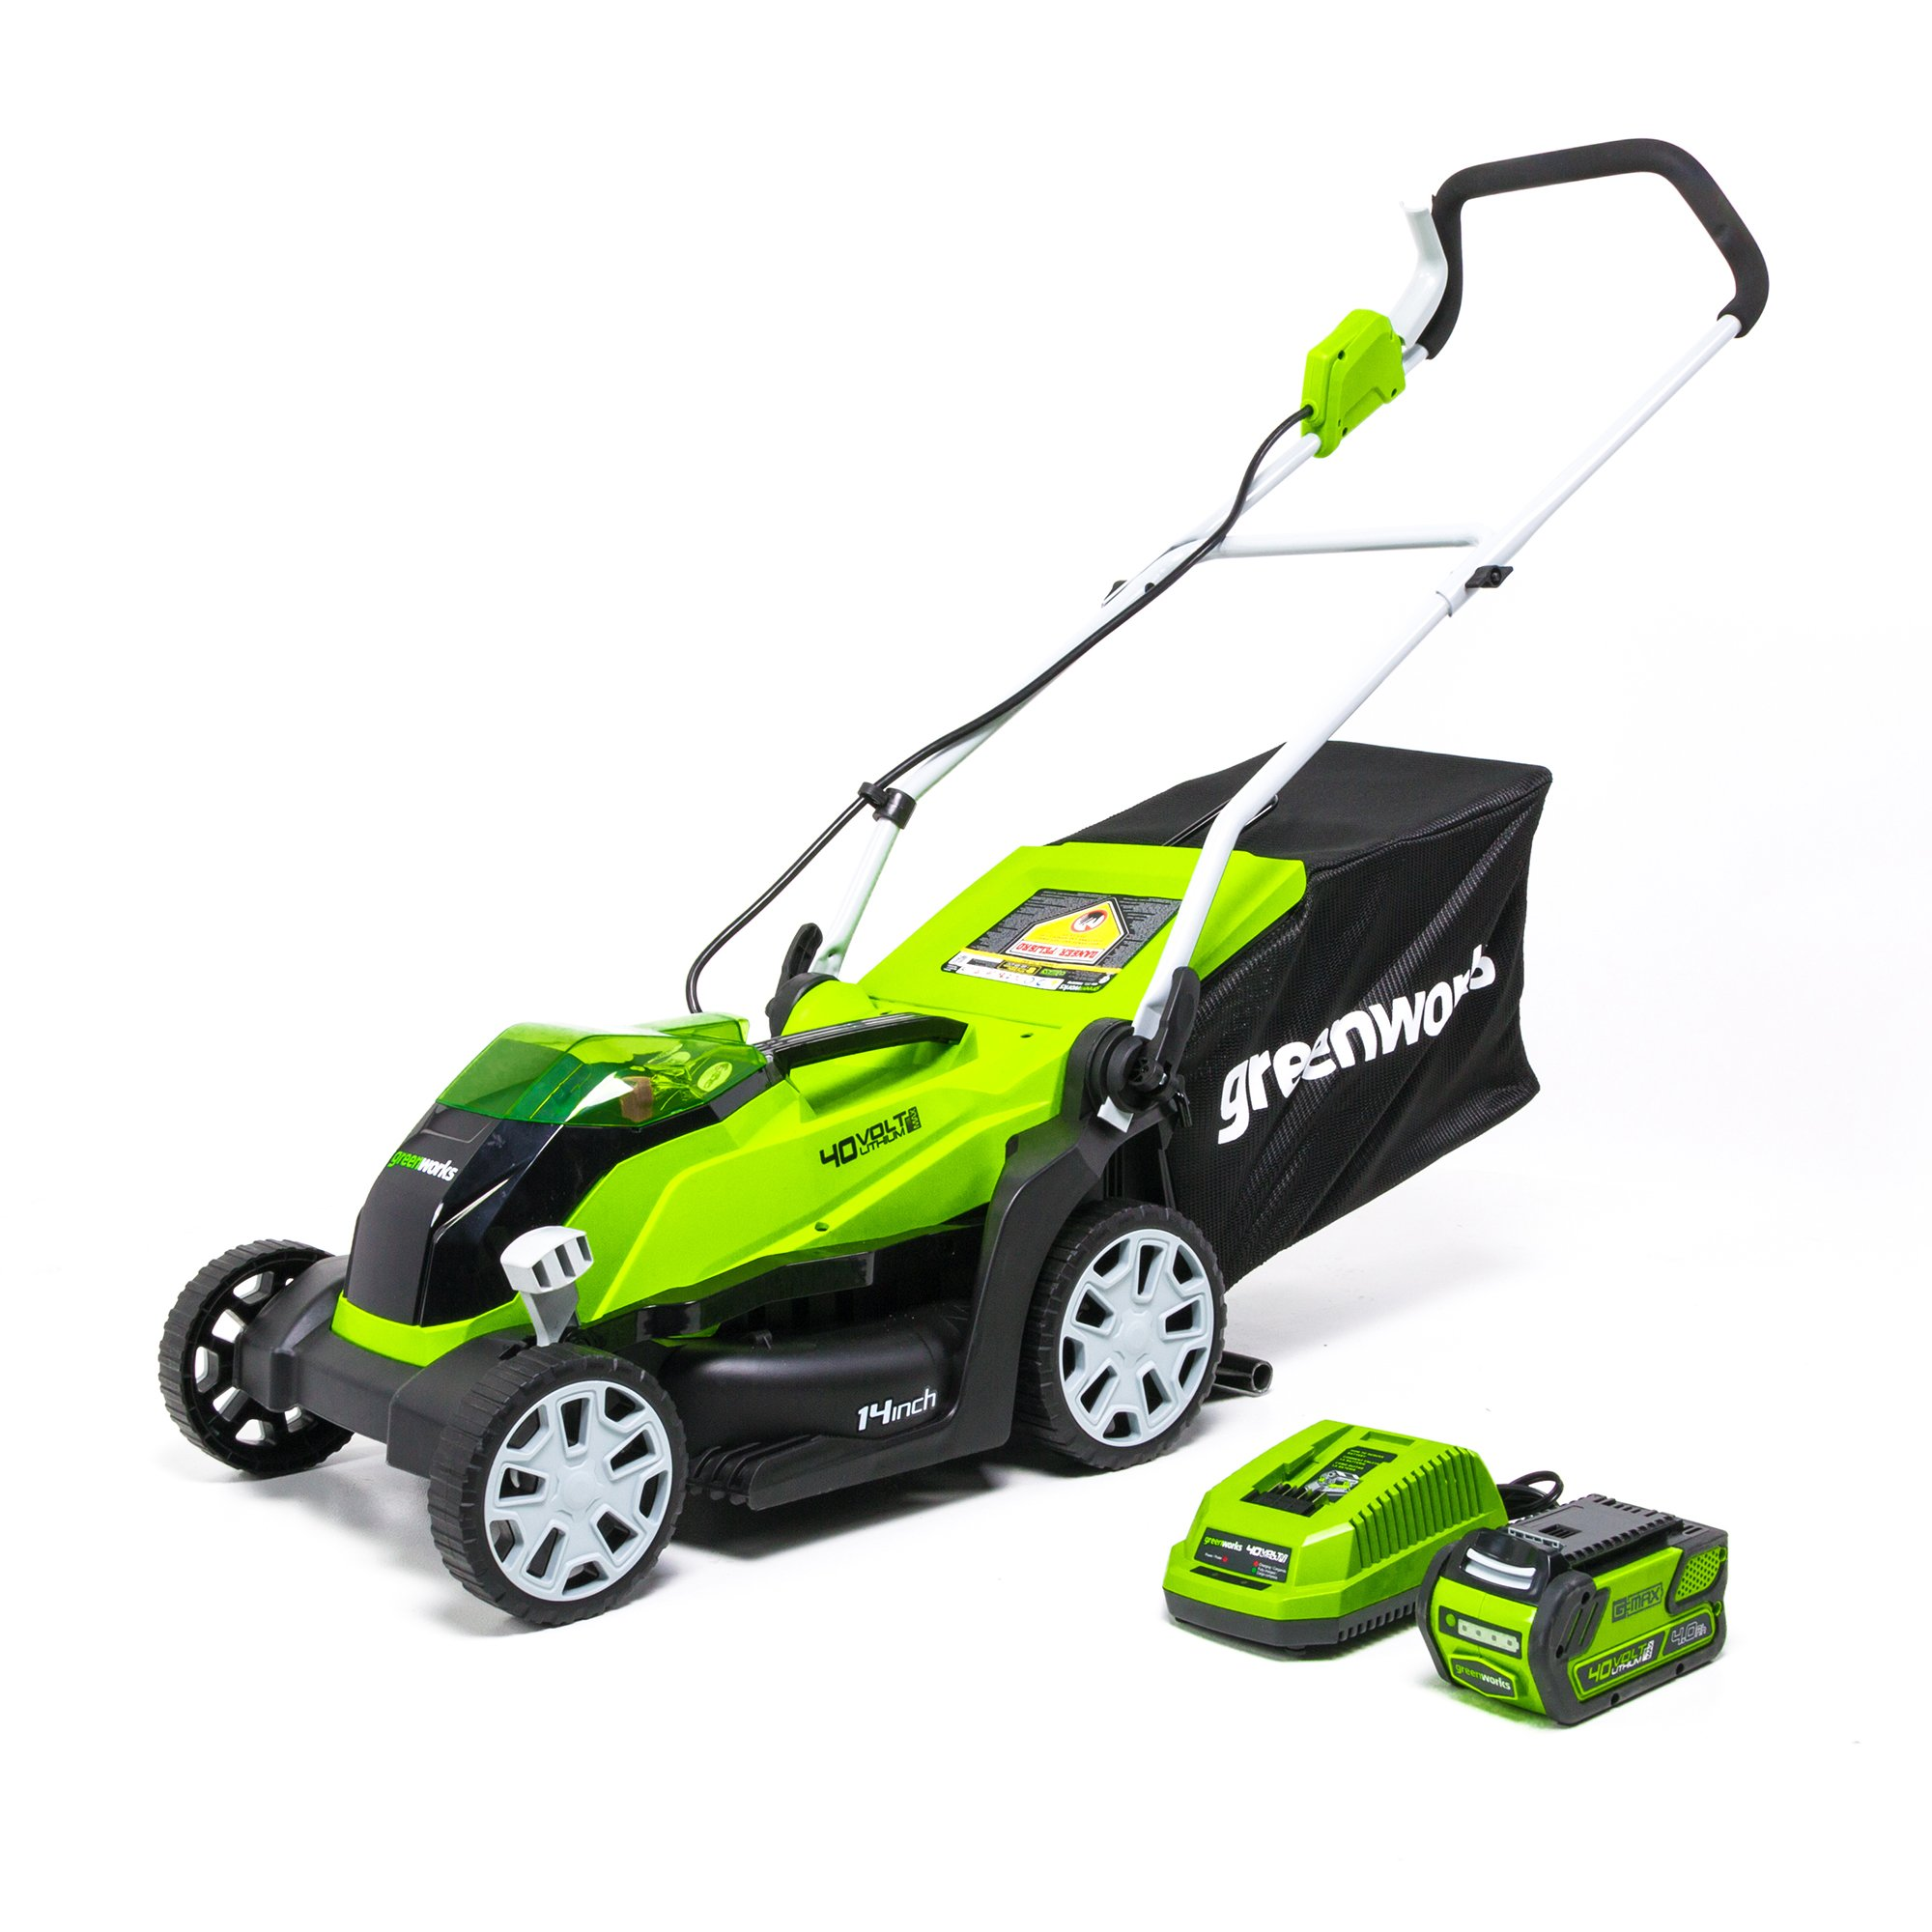 Greenworks 14-Inch 40V Cordless Lawn Mower, 4.0 AH Battery Included MO40B410 by Greenworks